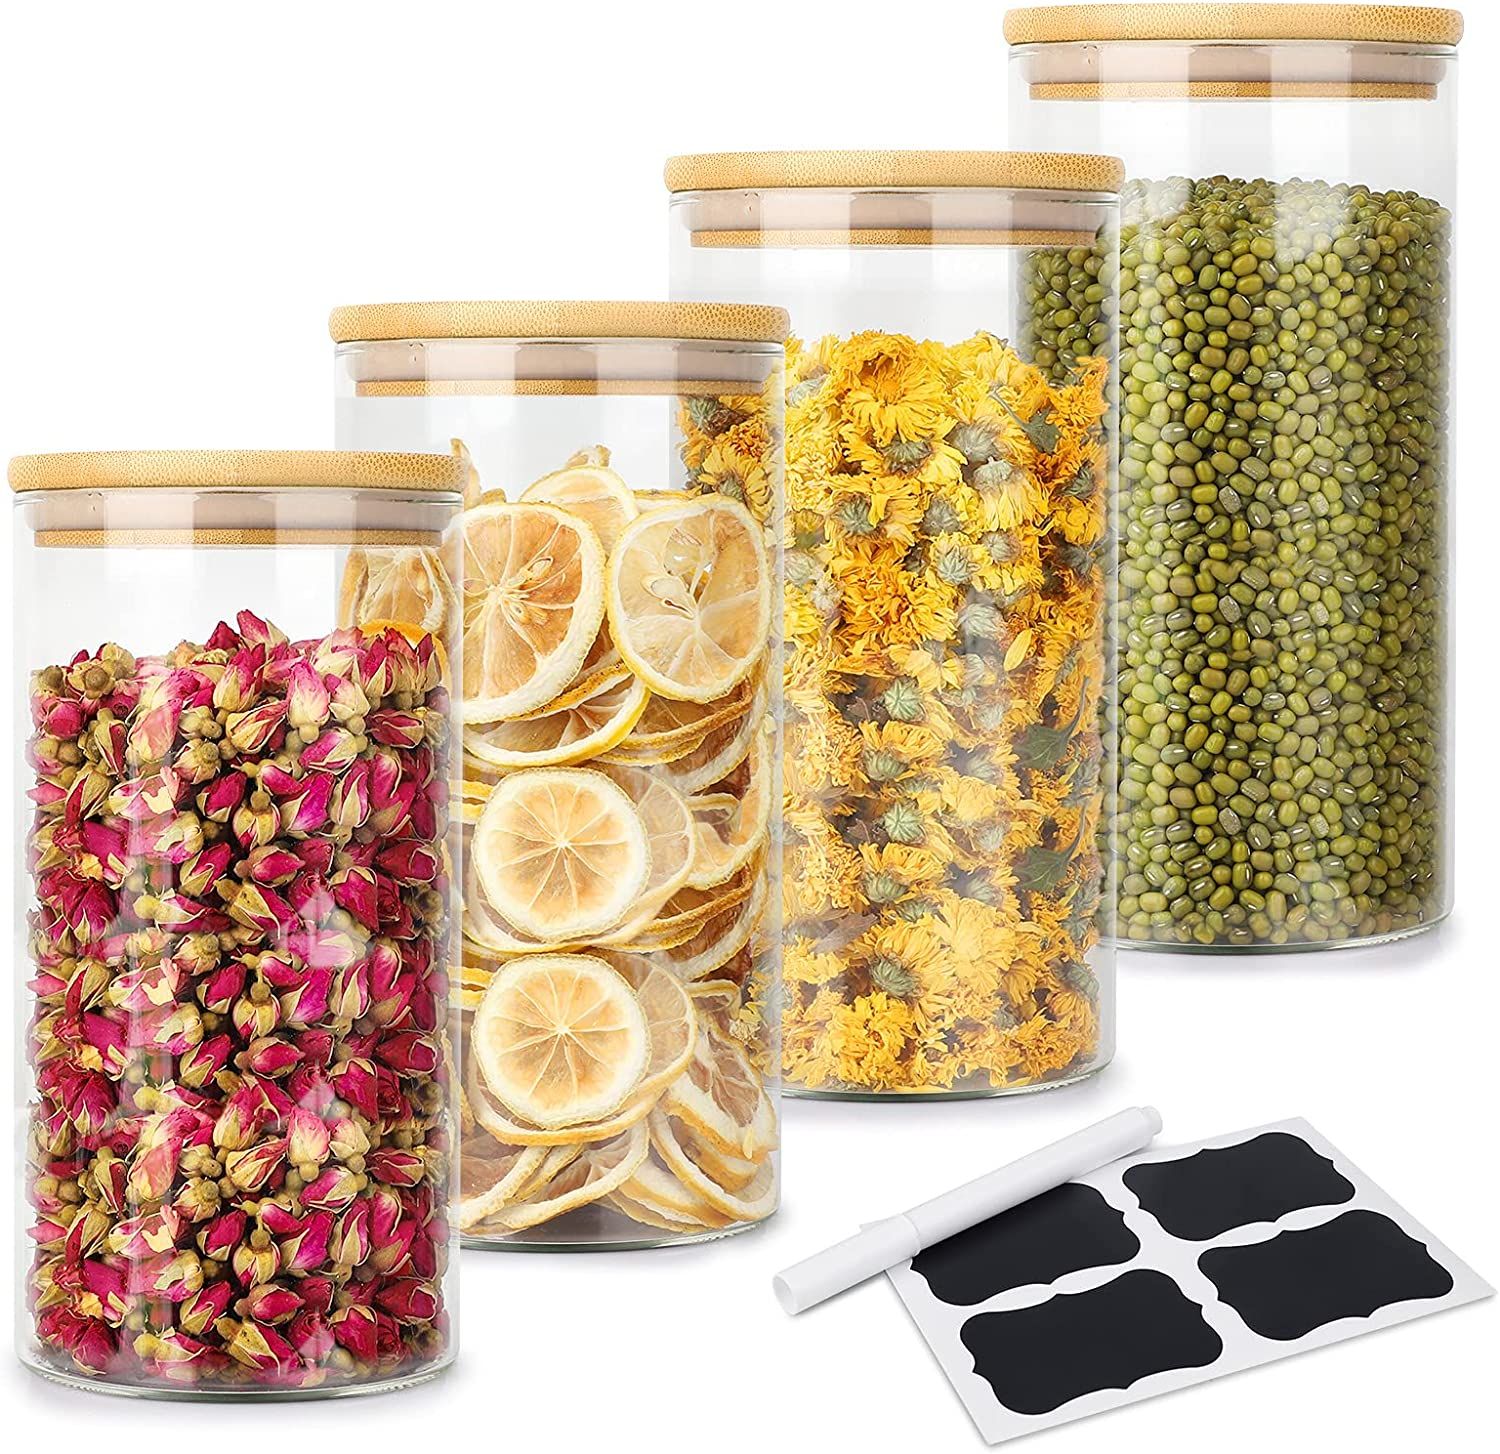 1200ml Glass Food Storage Jars Containers, 4 Pack Glass Cookies Jars with Airtight Bamboo Lid Kitchen Canisters Set for Jam Pasta Spaghetti Tea Coffee Beans Cookie Snack Flour (40.5OZ / 4 PACK)